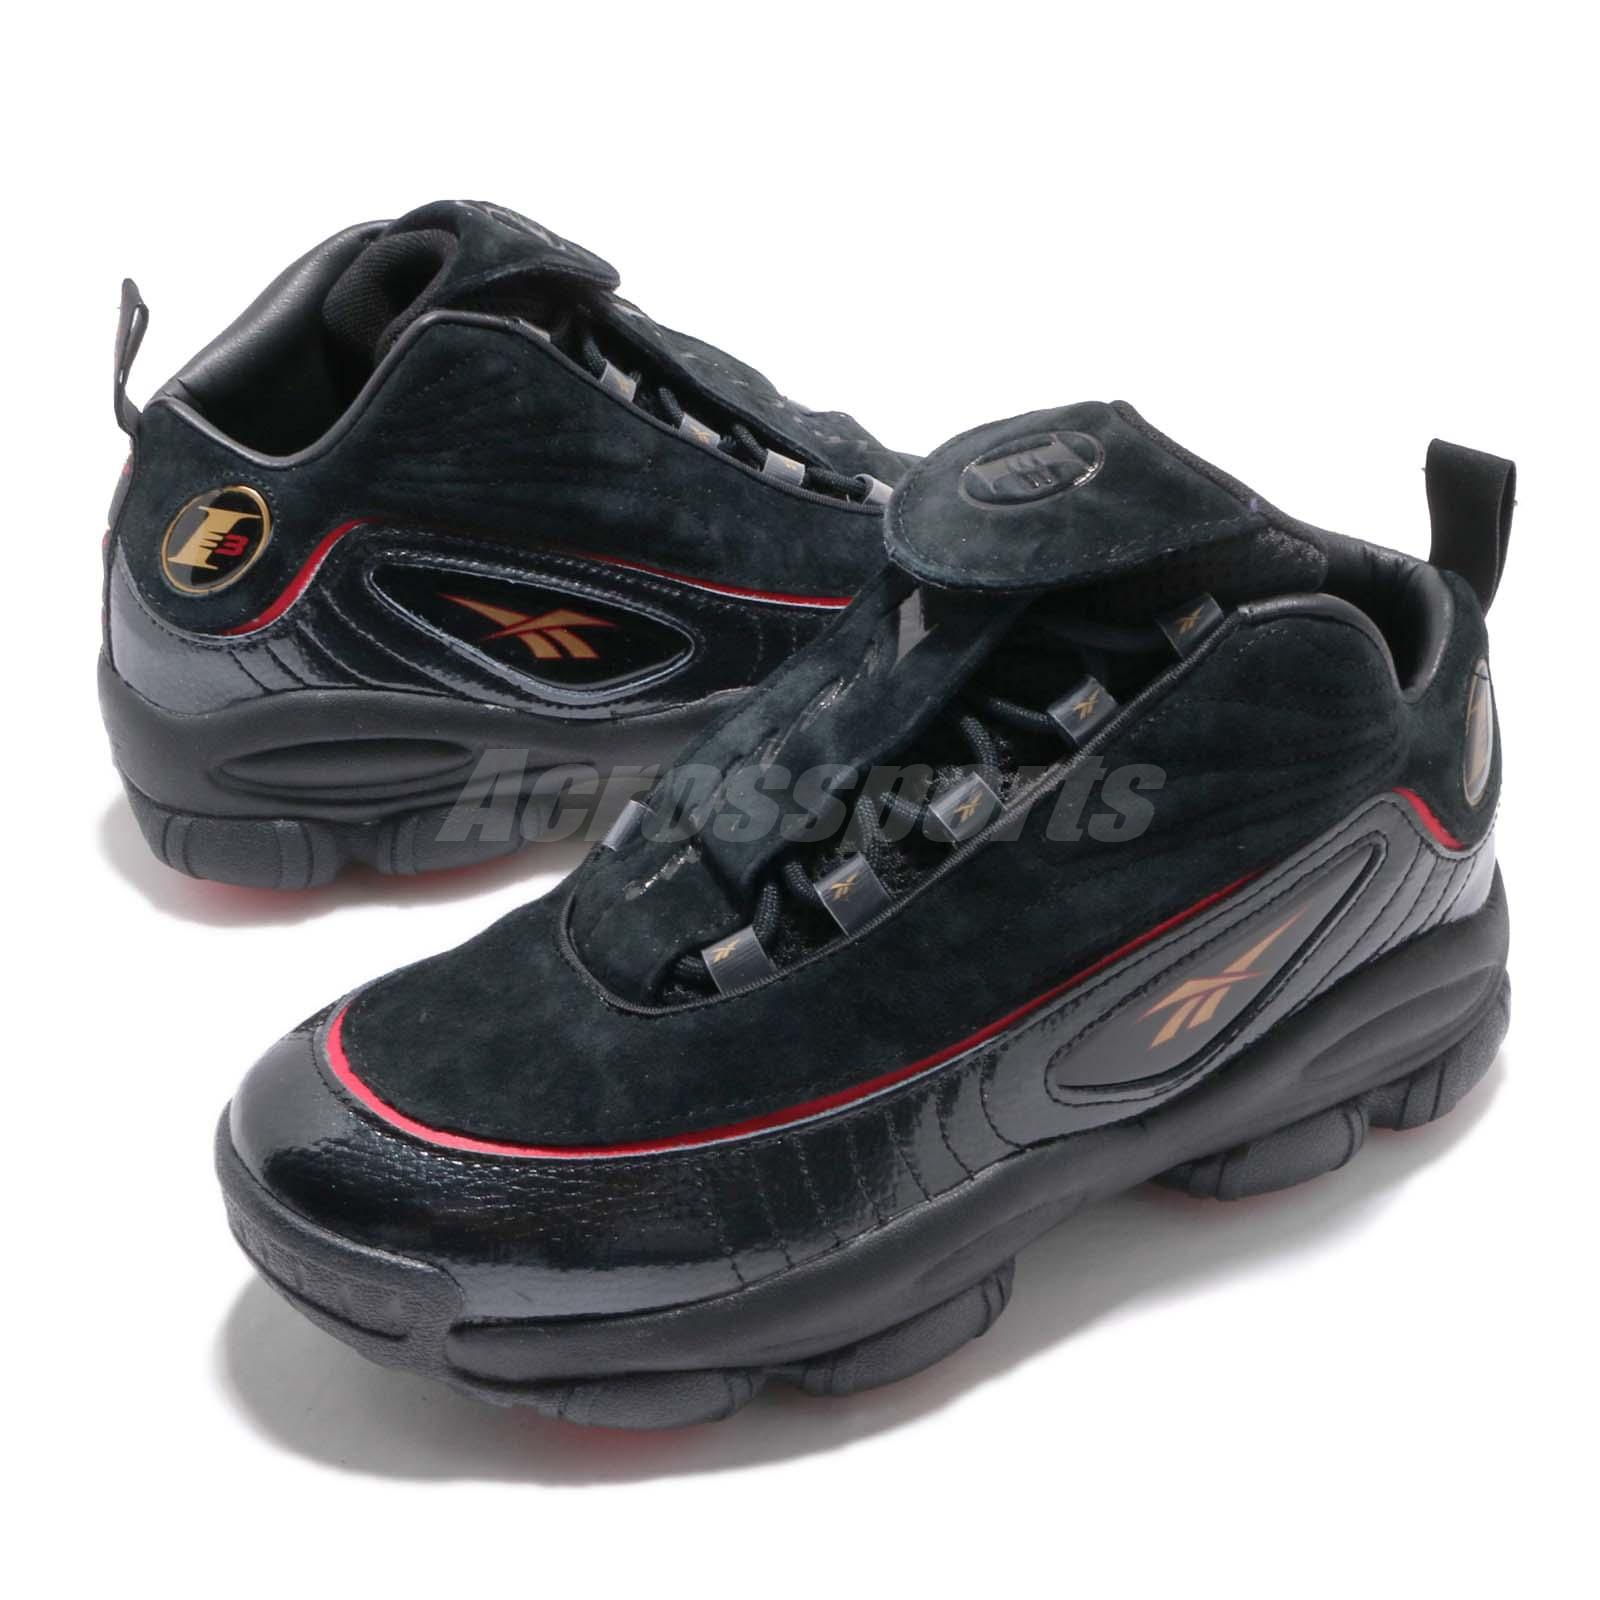 58cfaa46f6b4 Details about Reebok Iverson Legacy I3 Allen The Answer Black Red Men  Basketball Shoes CN8404